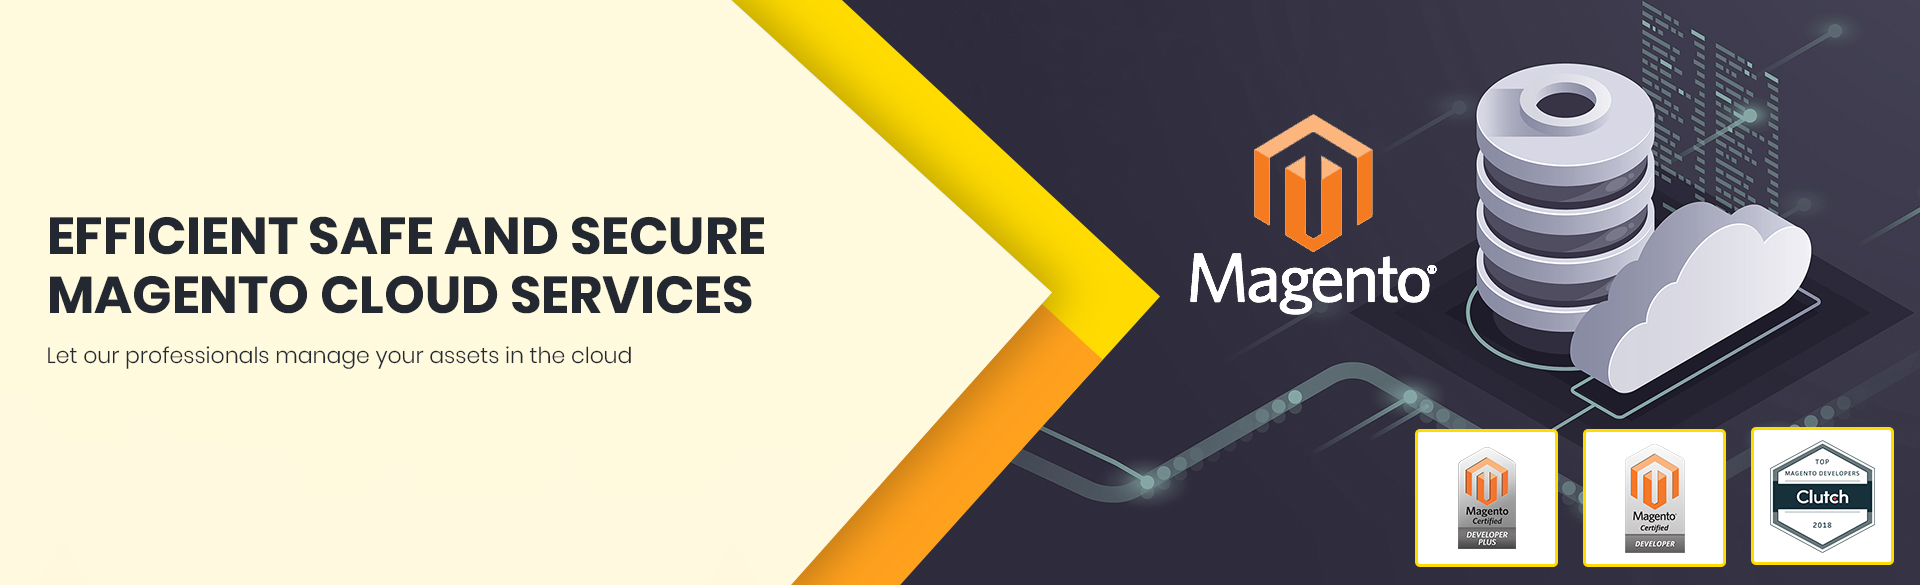 Magento Cloud Services